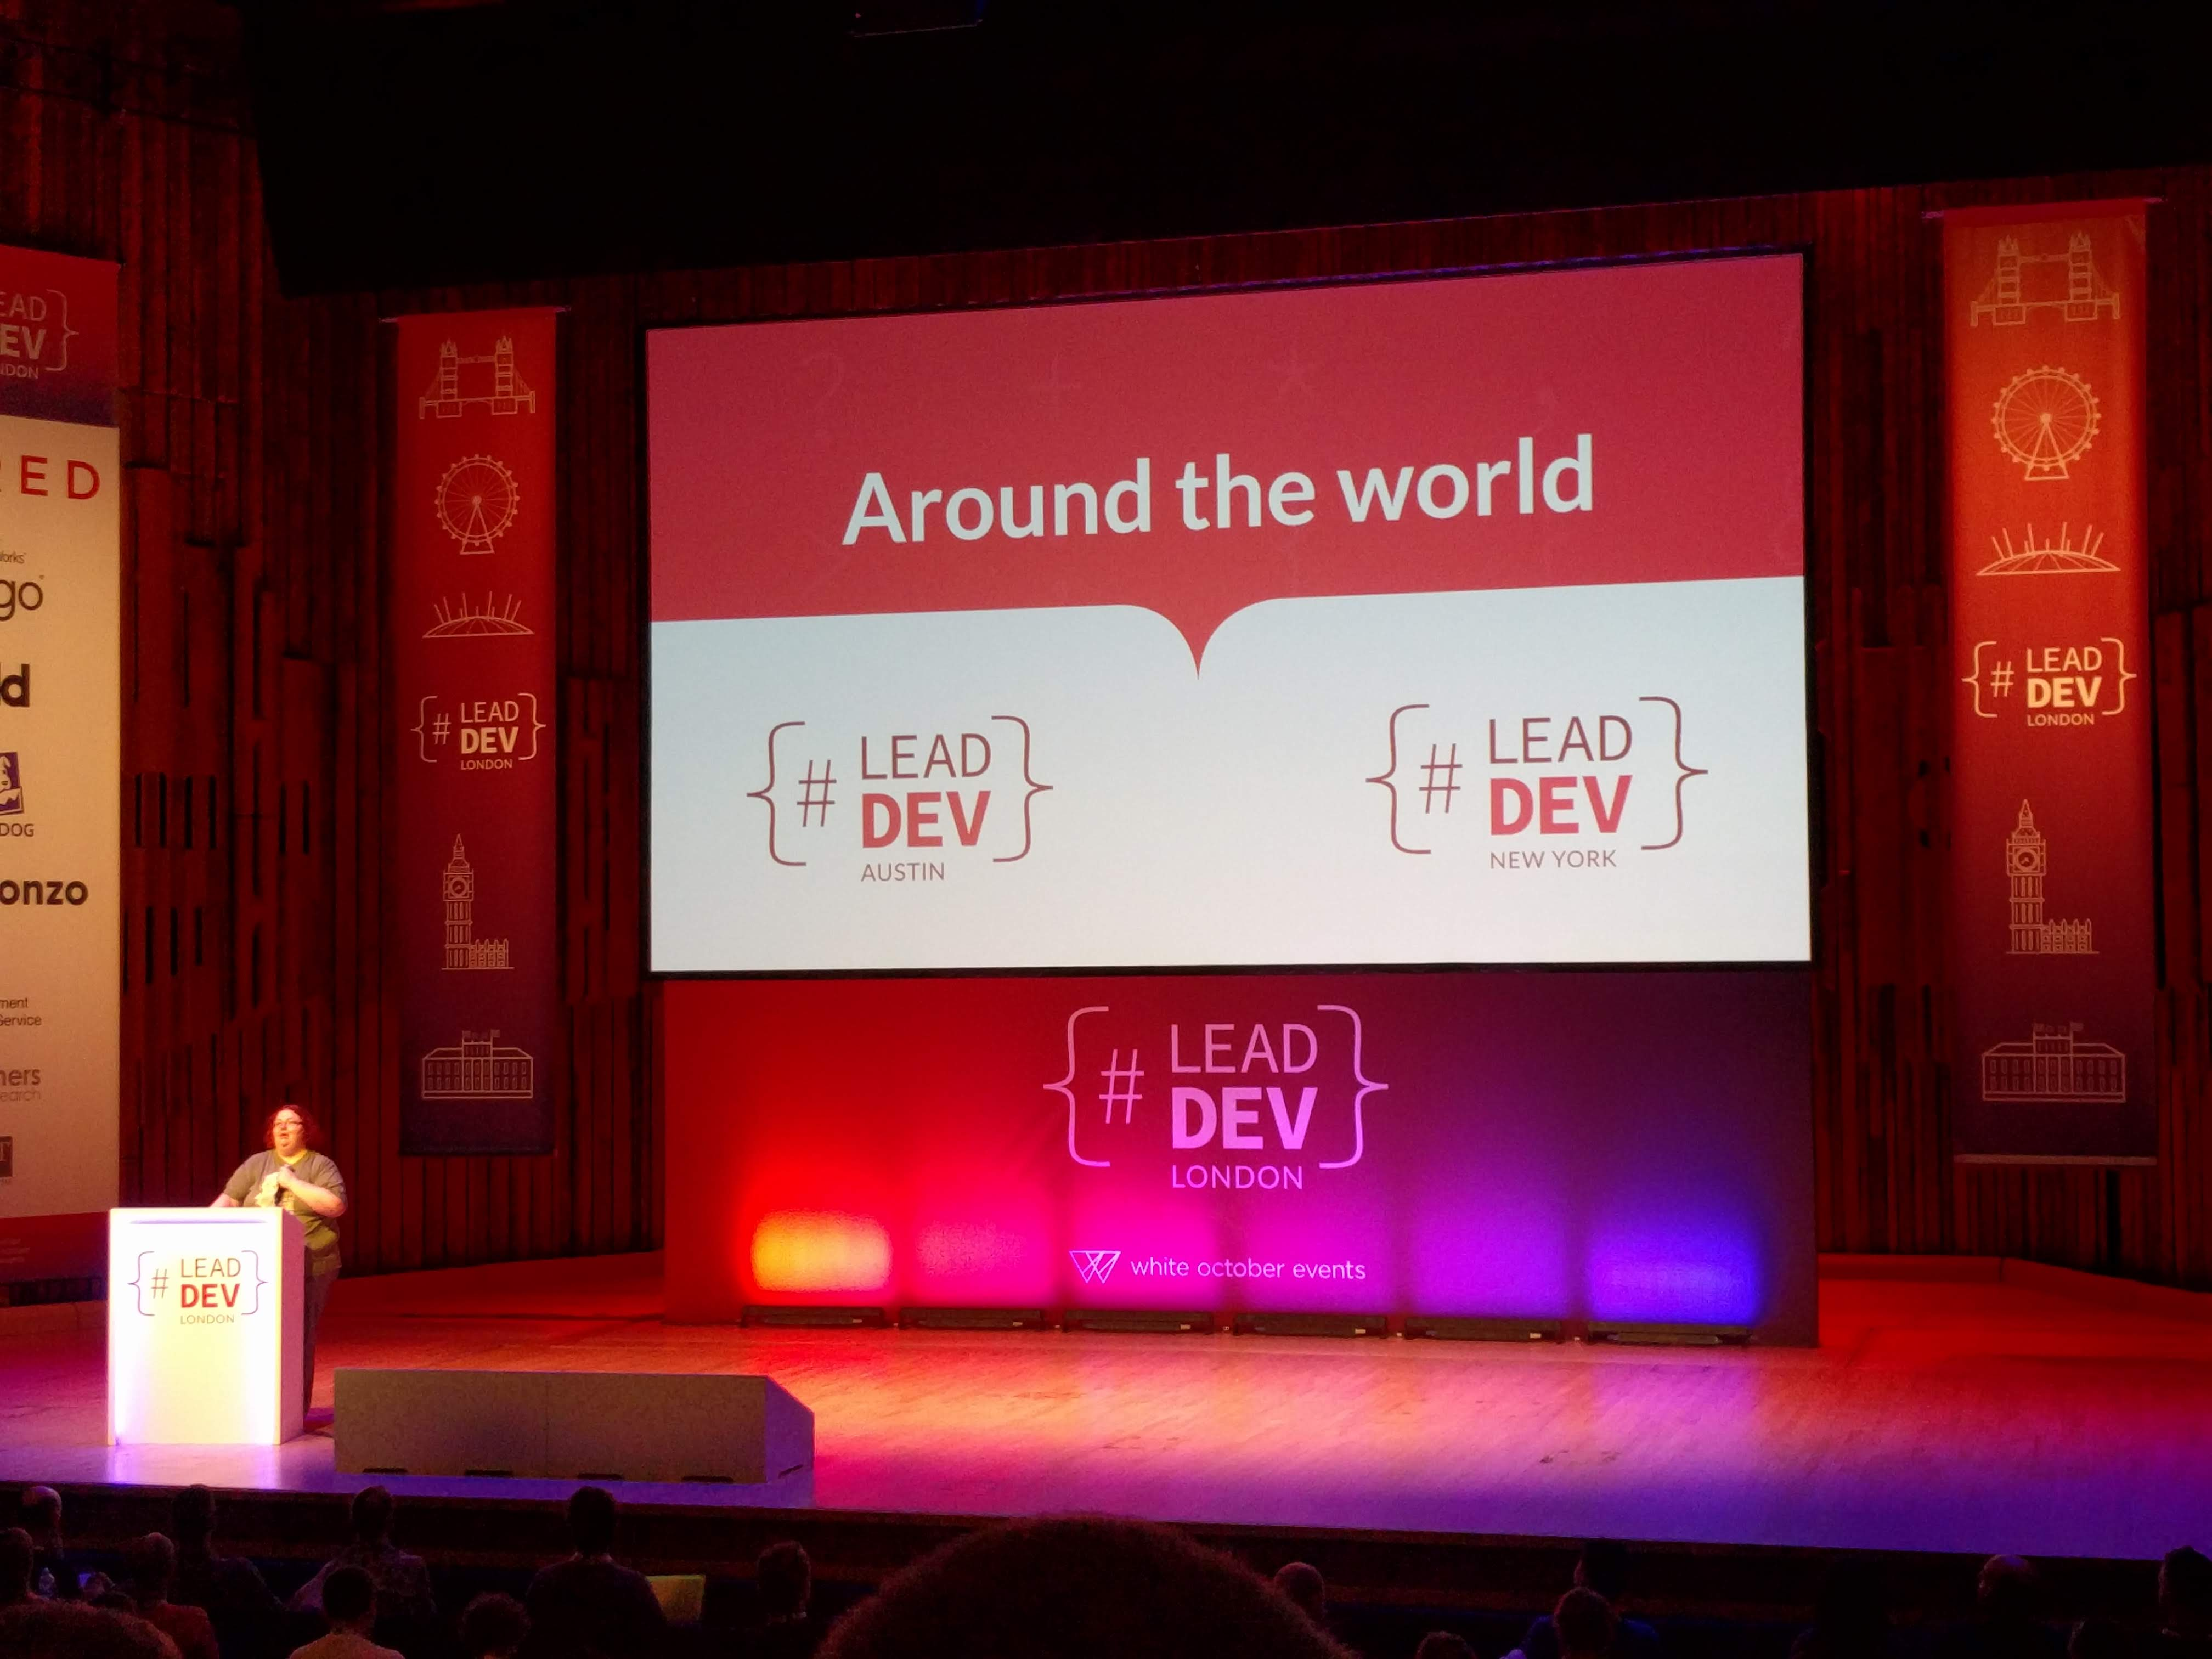 Other LeadDev Conferences